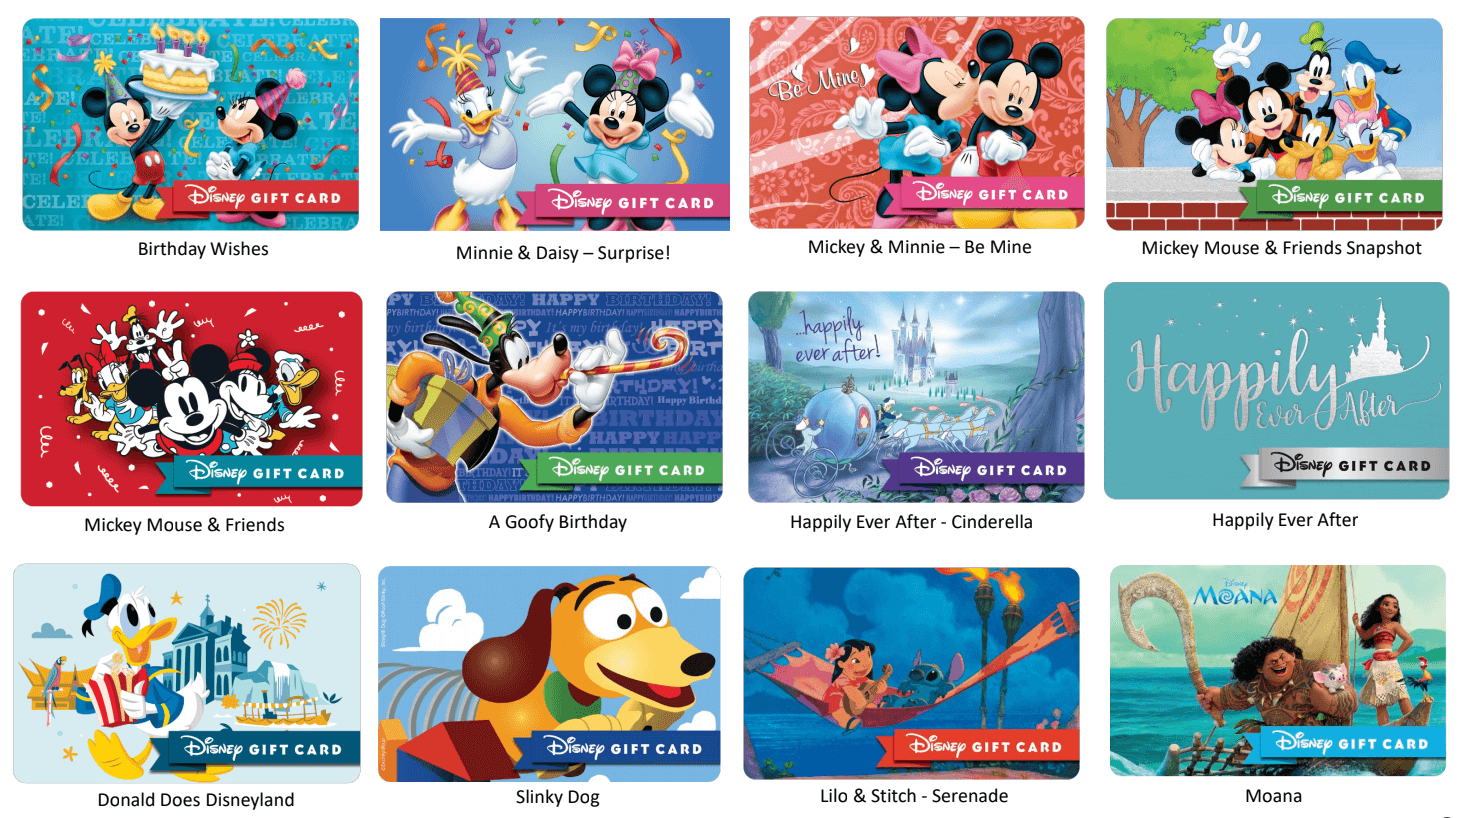 Classic Disney Gift Cards